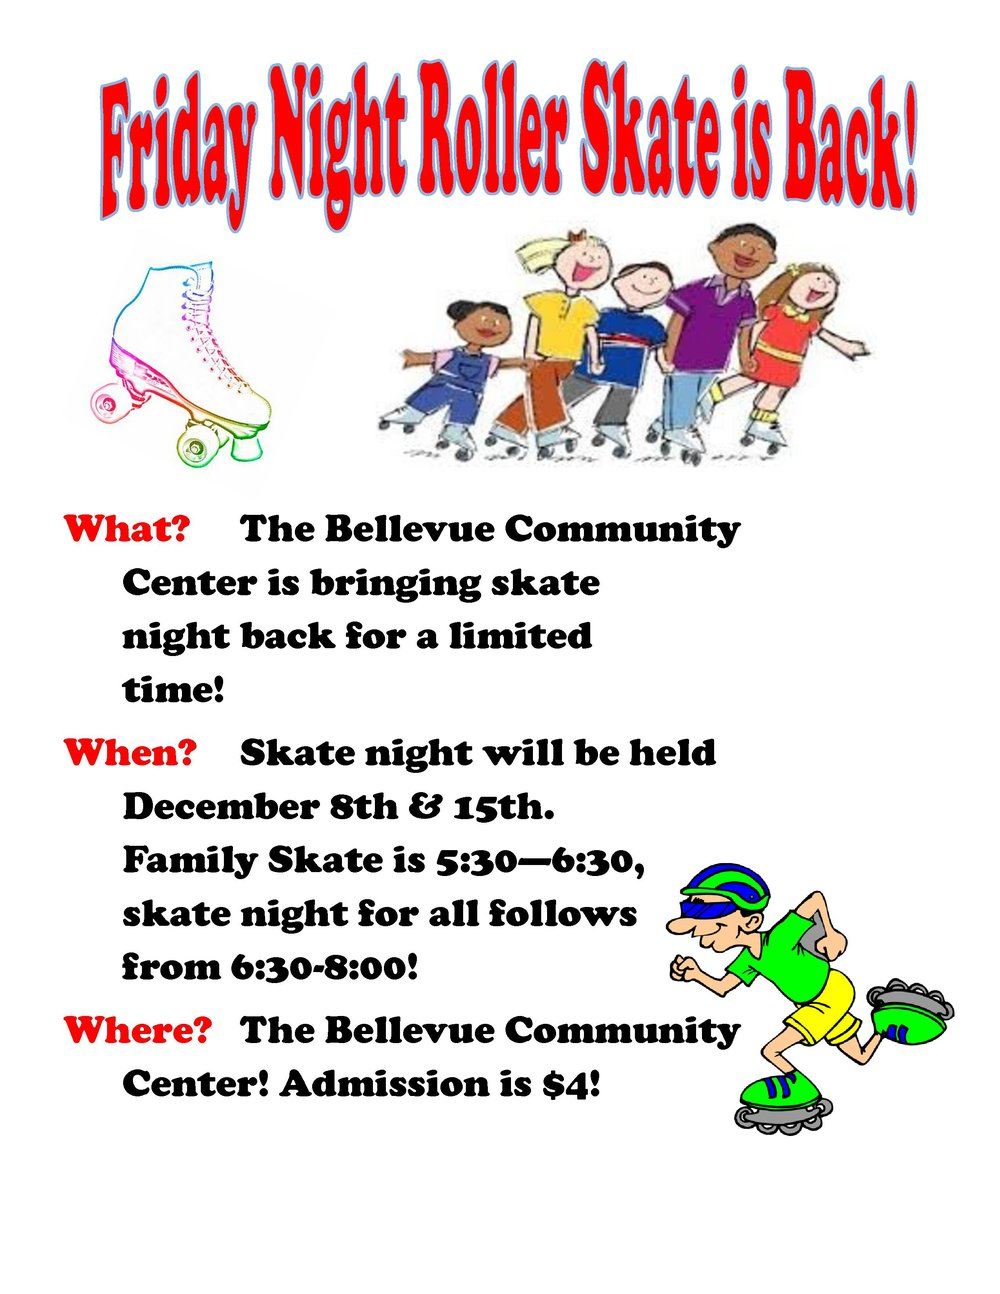 Friday Night Roller Skating is back! For a limited time only! December 8 and 15 Family Skate: 5:30–6:30 p.m. All Skate: 6:30–8 p.m. Admission: $4